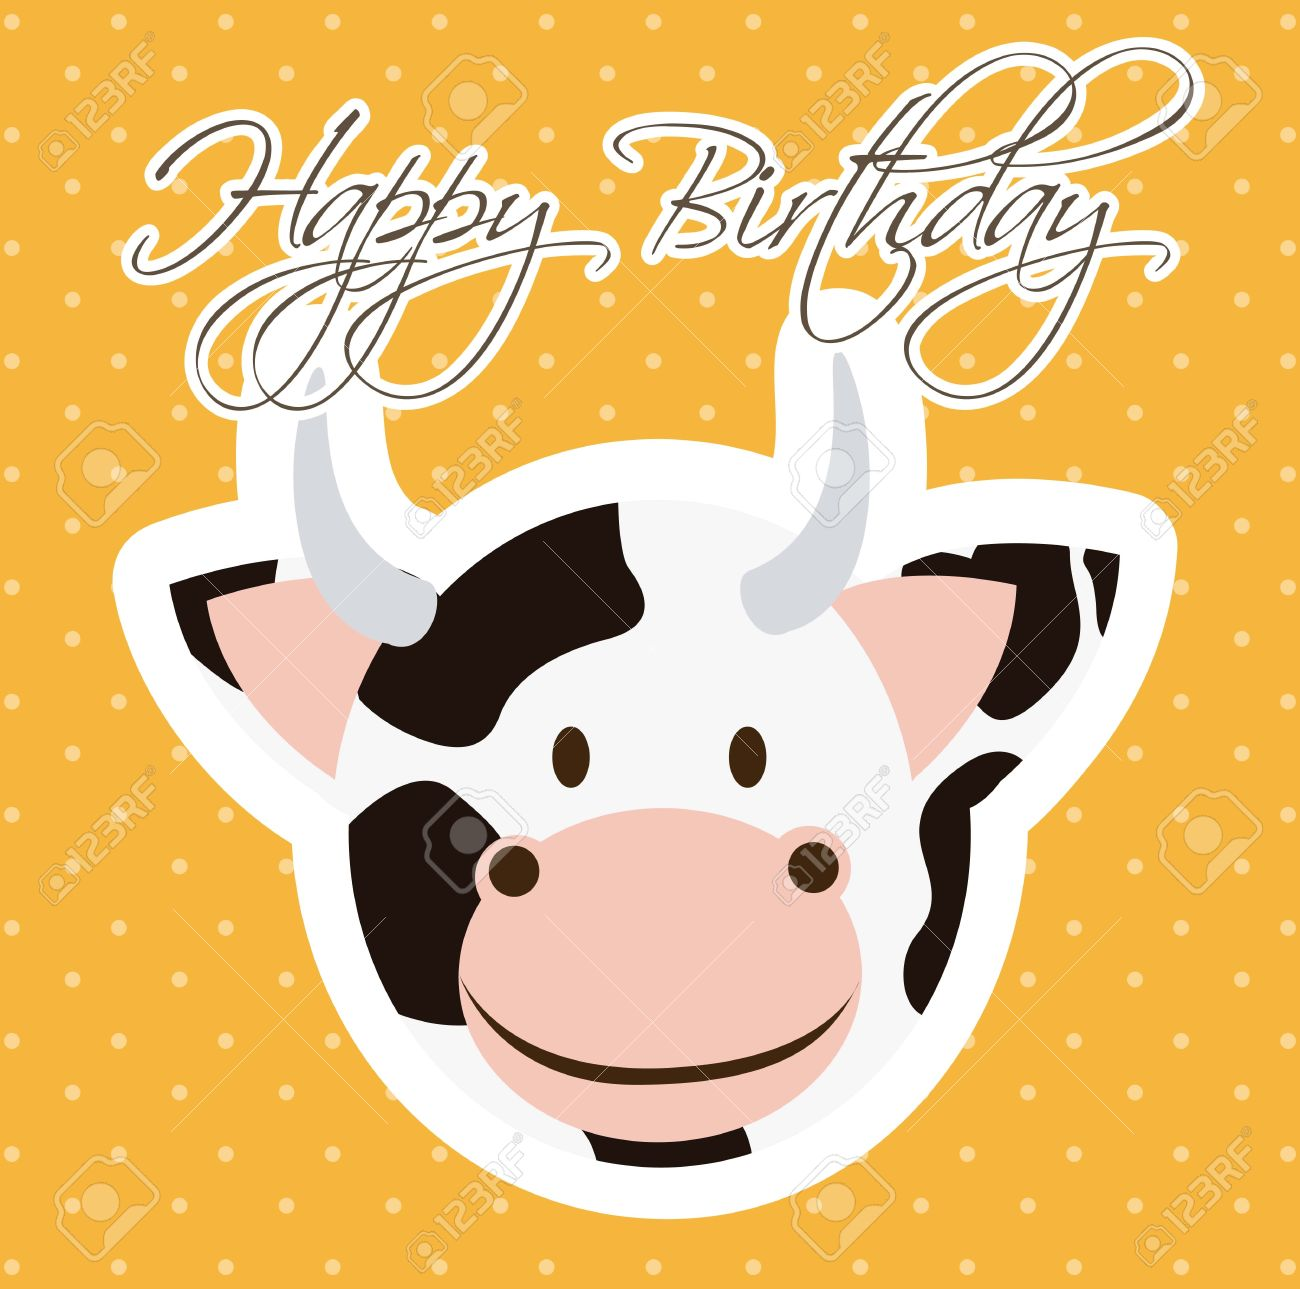 Bappy birthday card with cow cartoon vector illustration royalty bappy birthday card with cow cartoon vector illustration stock vector 16997310 bookmarktalkfo Images